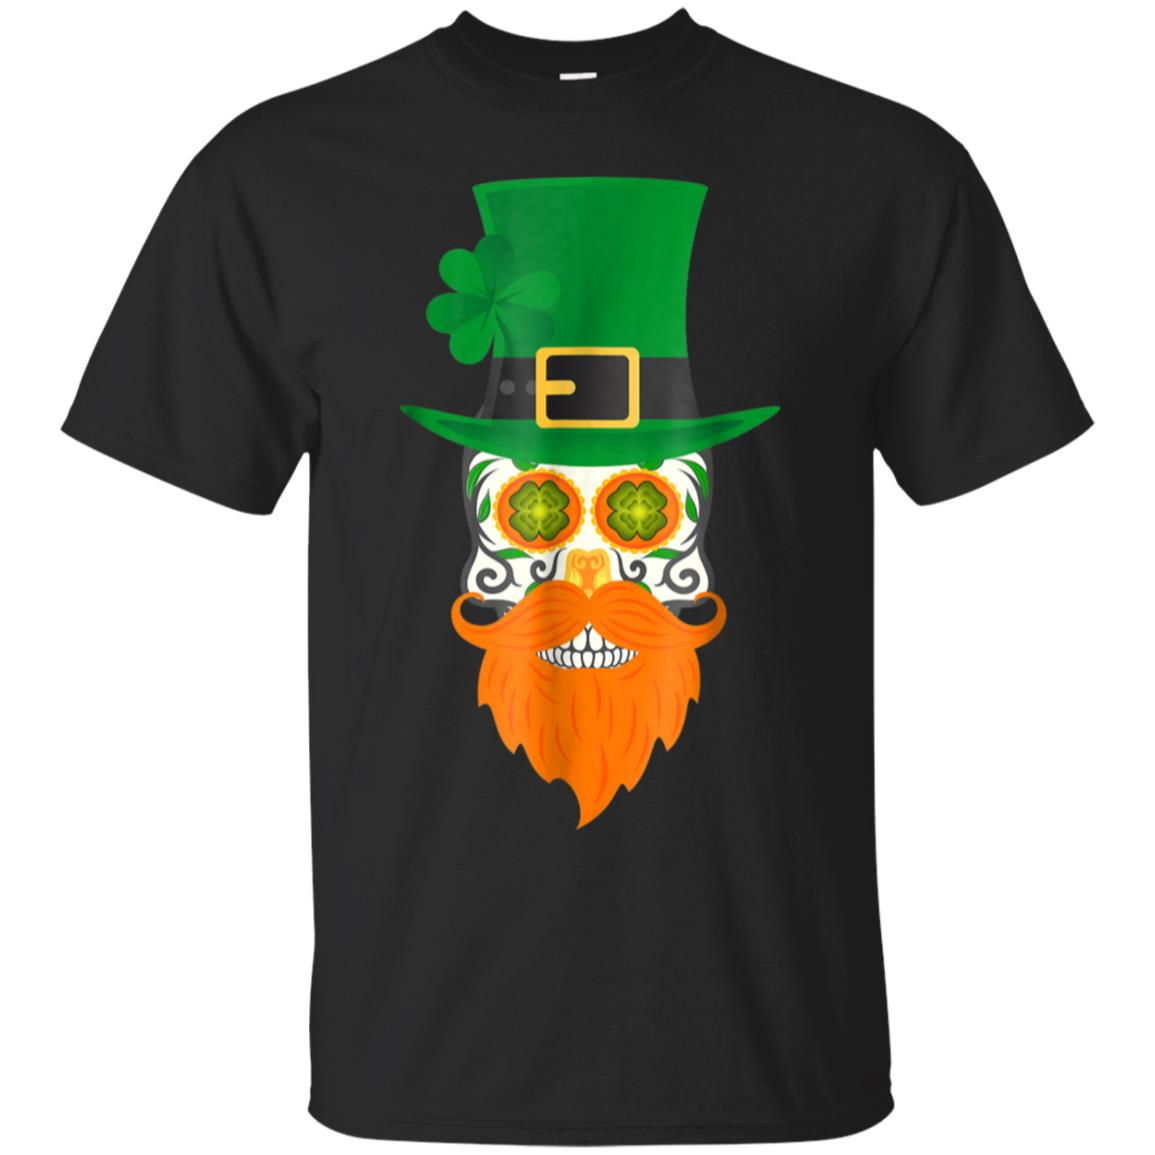 St Patricks Day Shirt Irish Sugar Skull Cinco De Mayo Shirt 99promocode